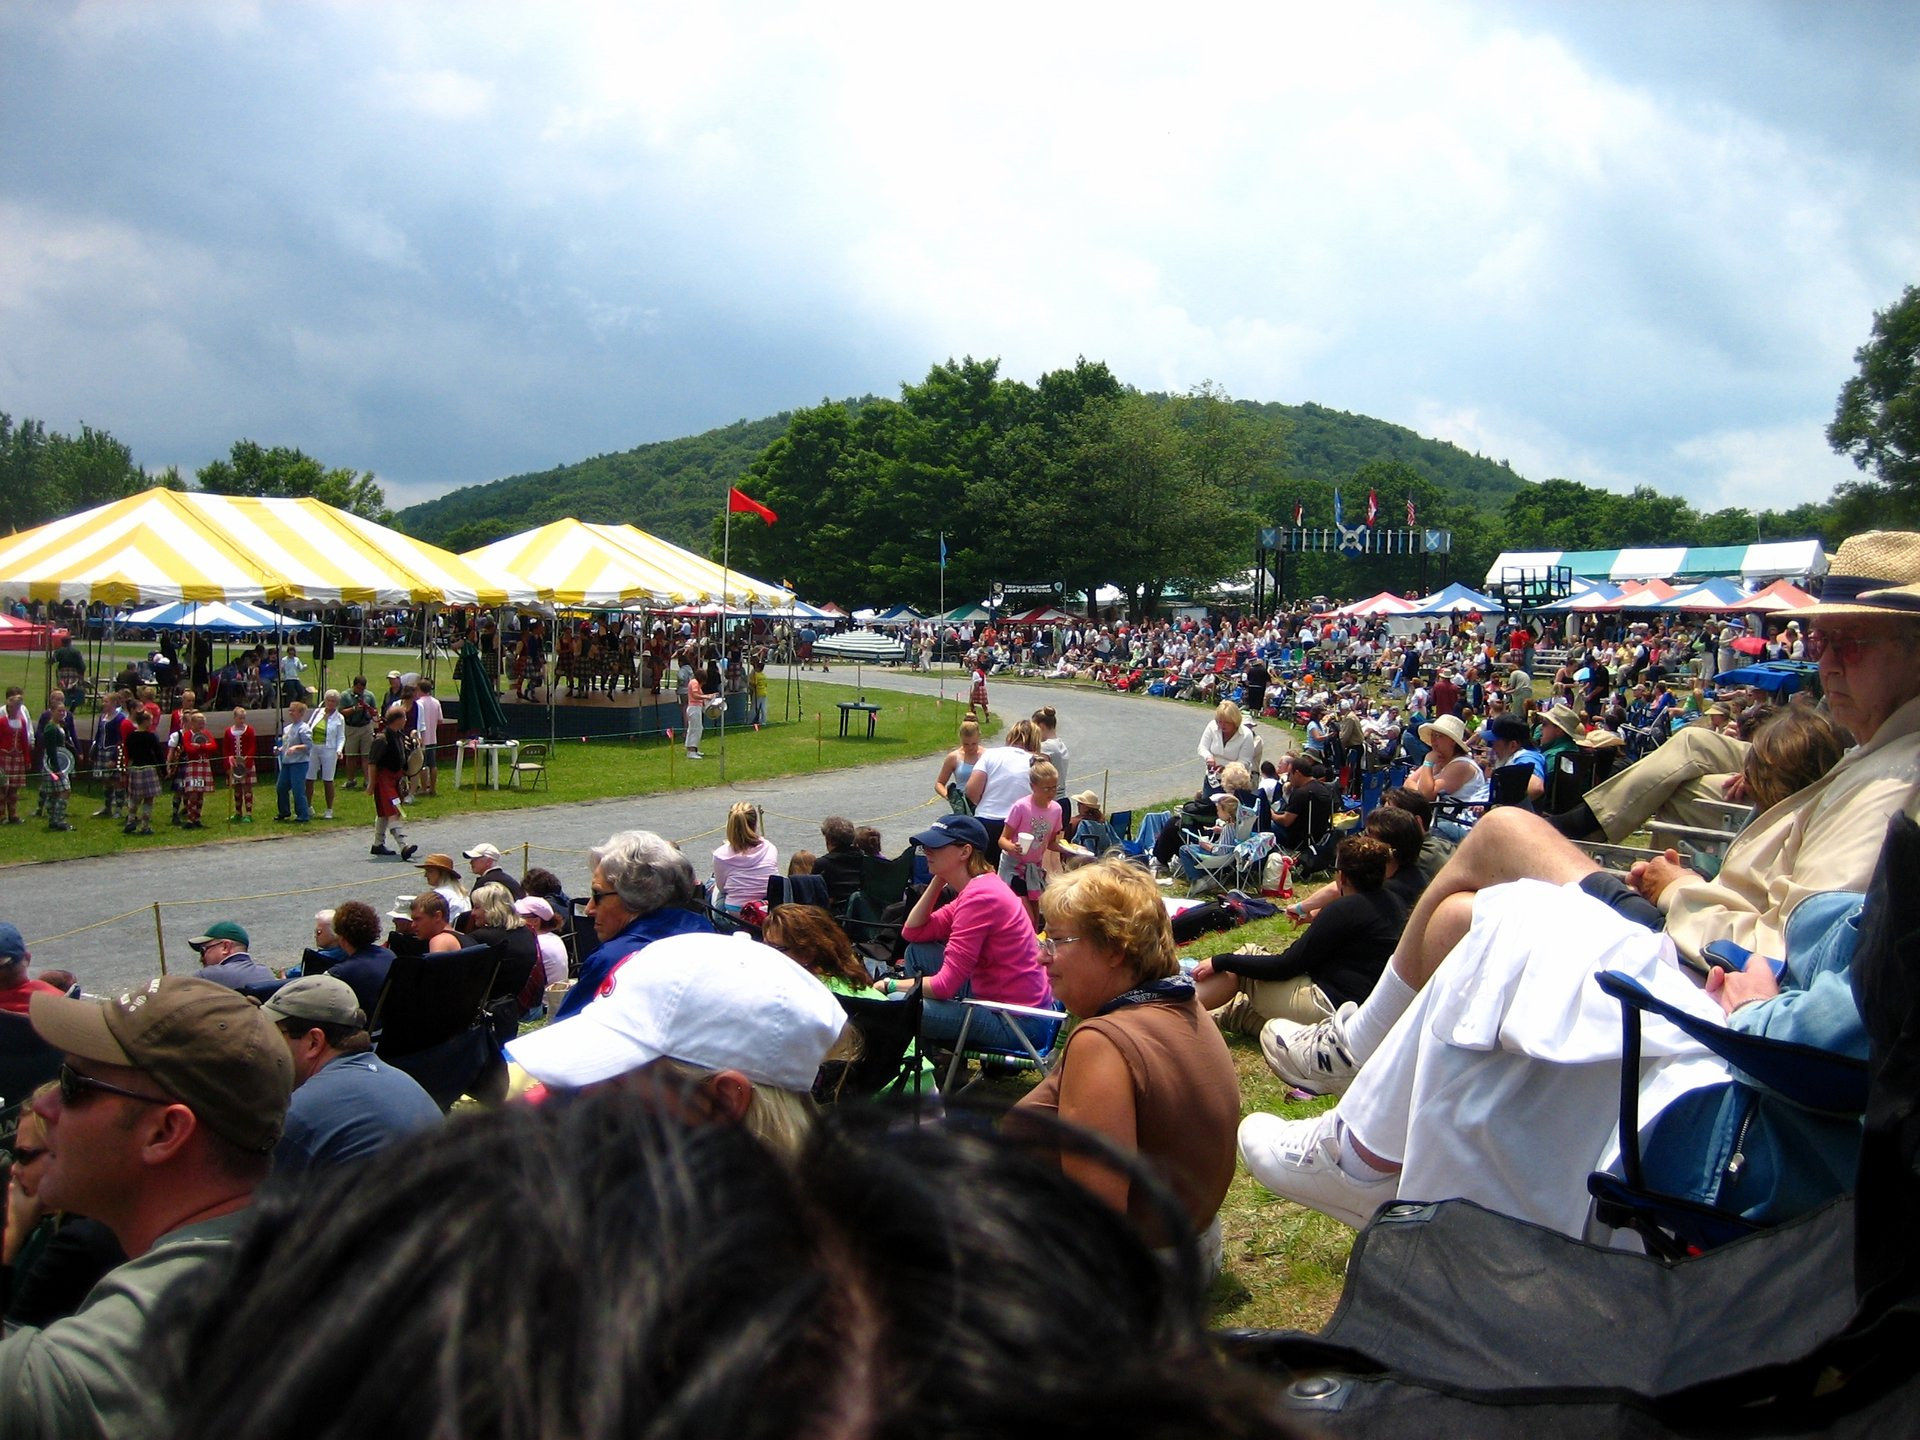 Grandfather Mountain Highland Games 2020.Grandfather Mountain Highland Games 2020 In North Carolina